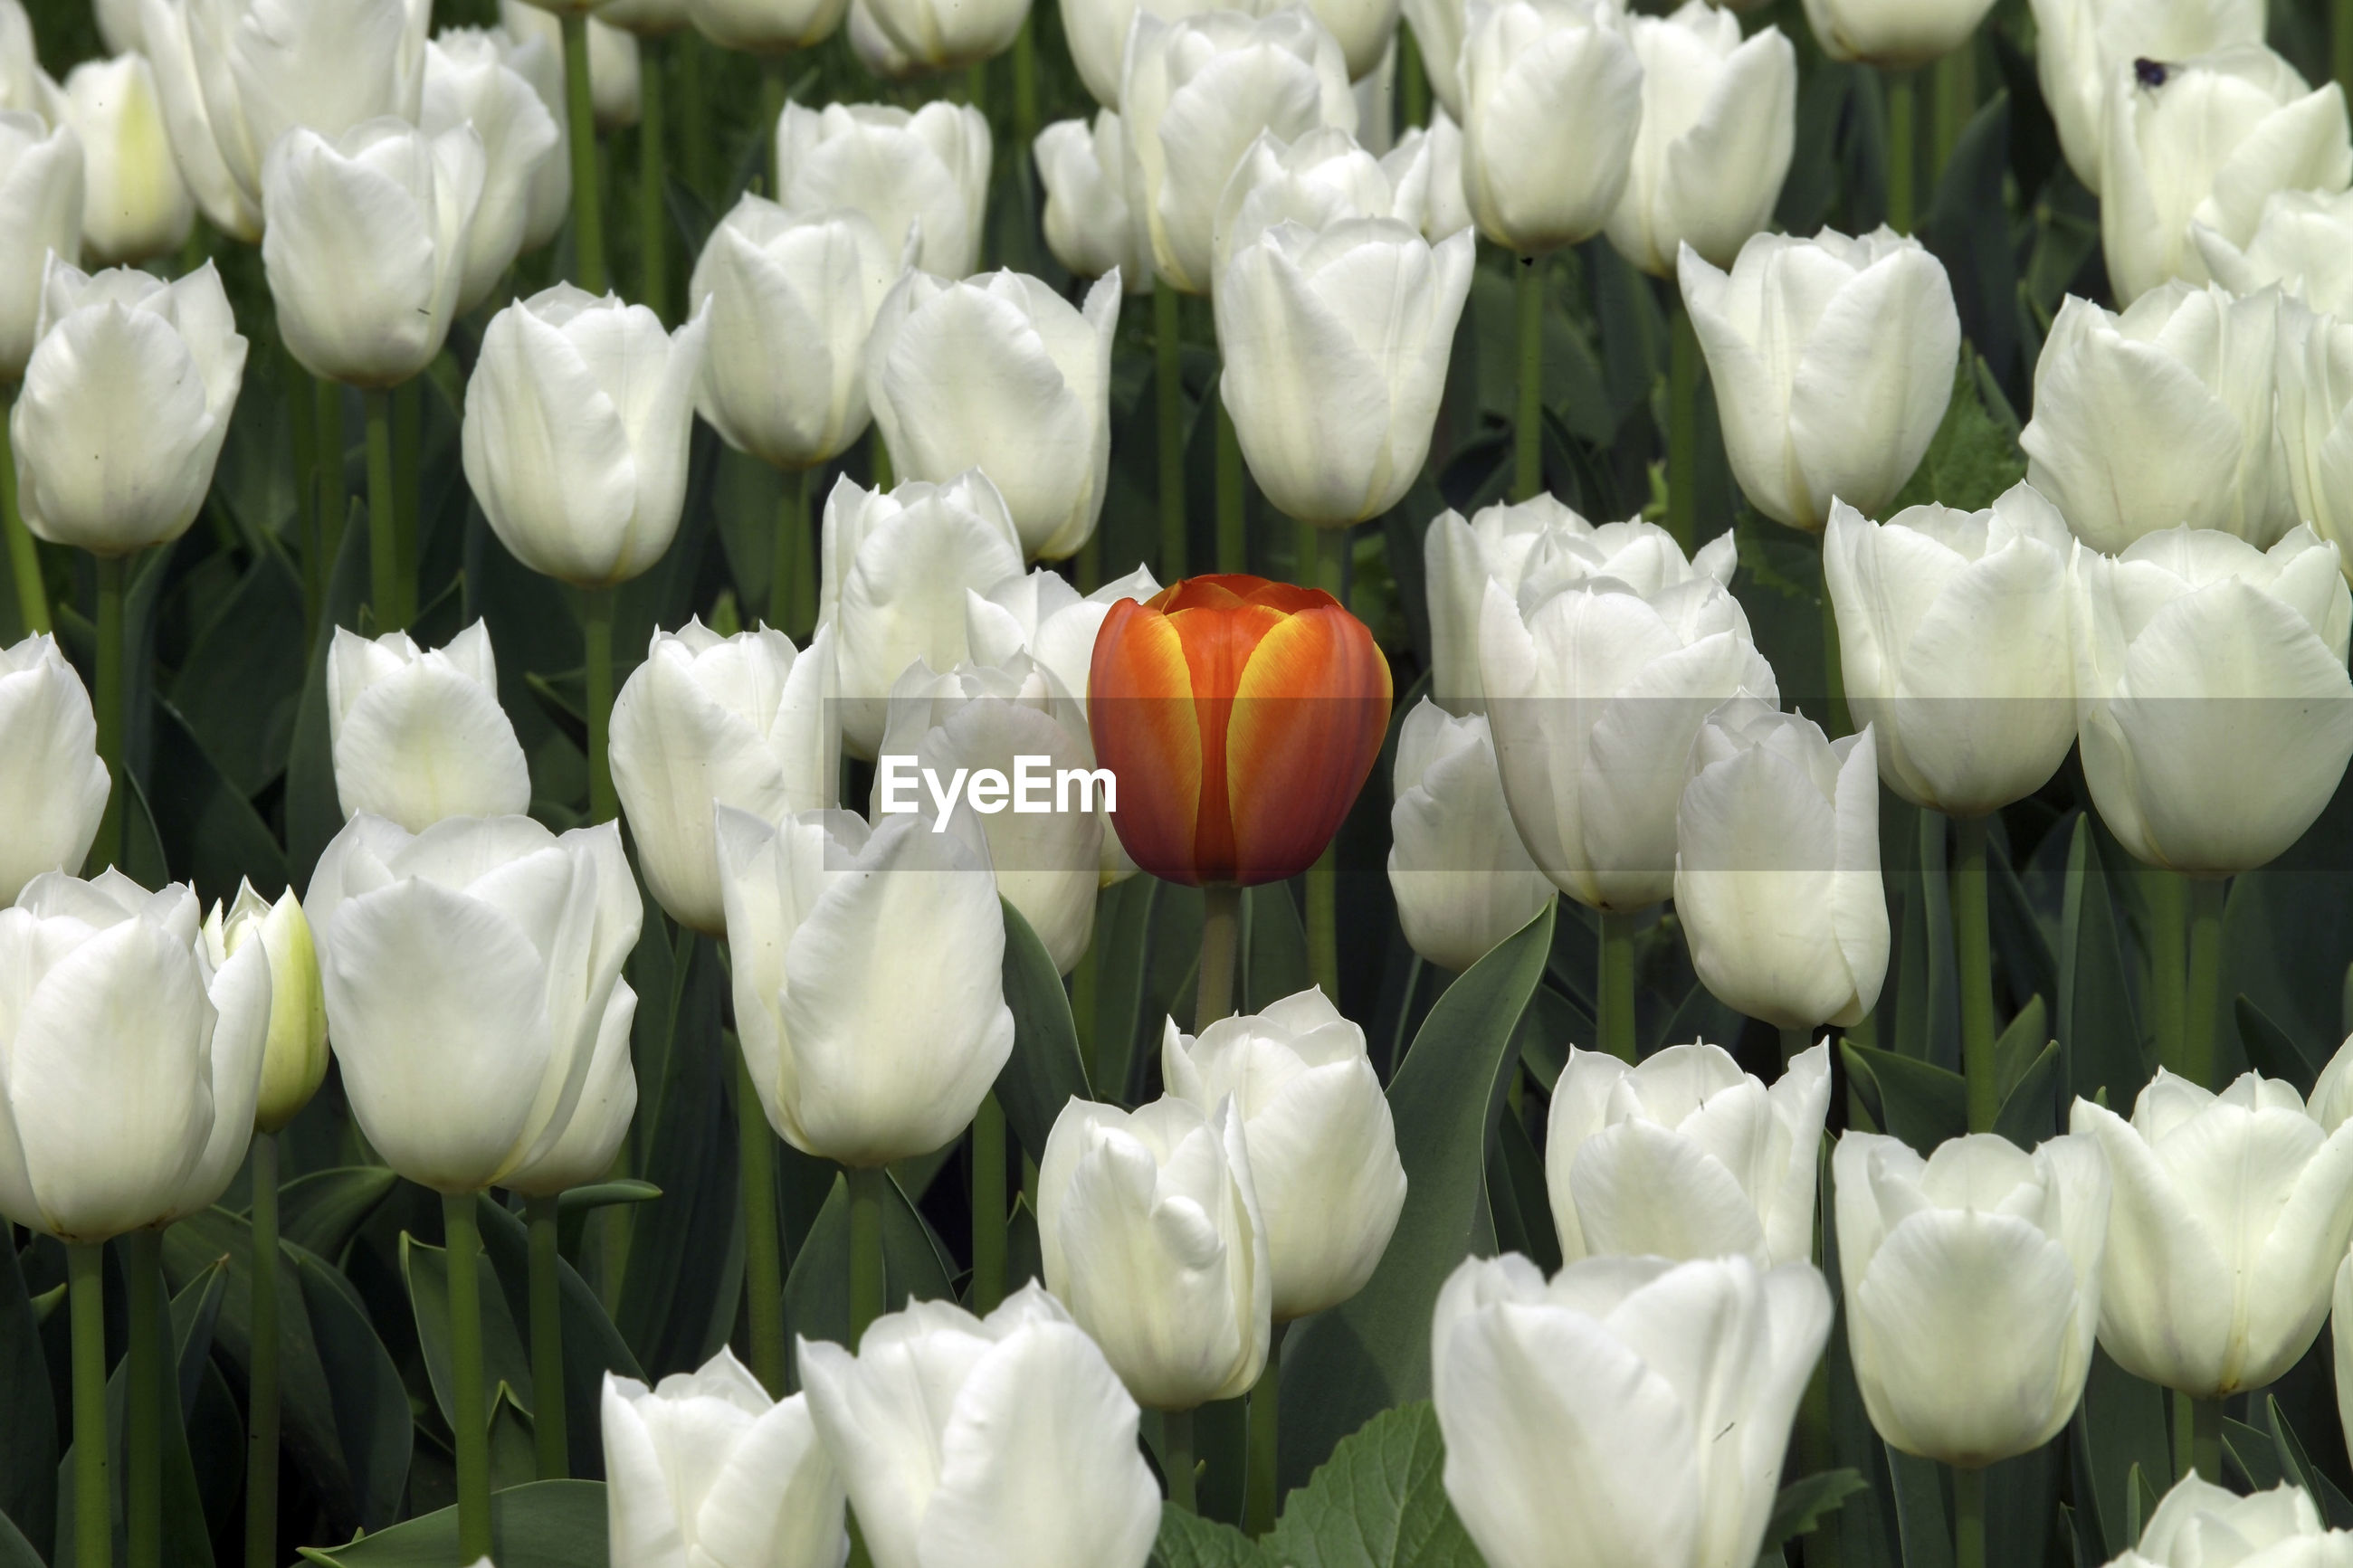 CLOSE-UP OF WHITE TULIP FLOWERS ON FIELD